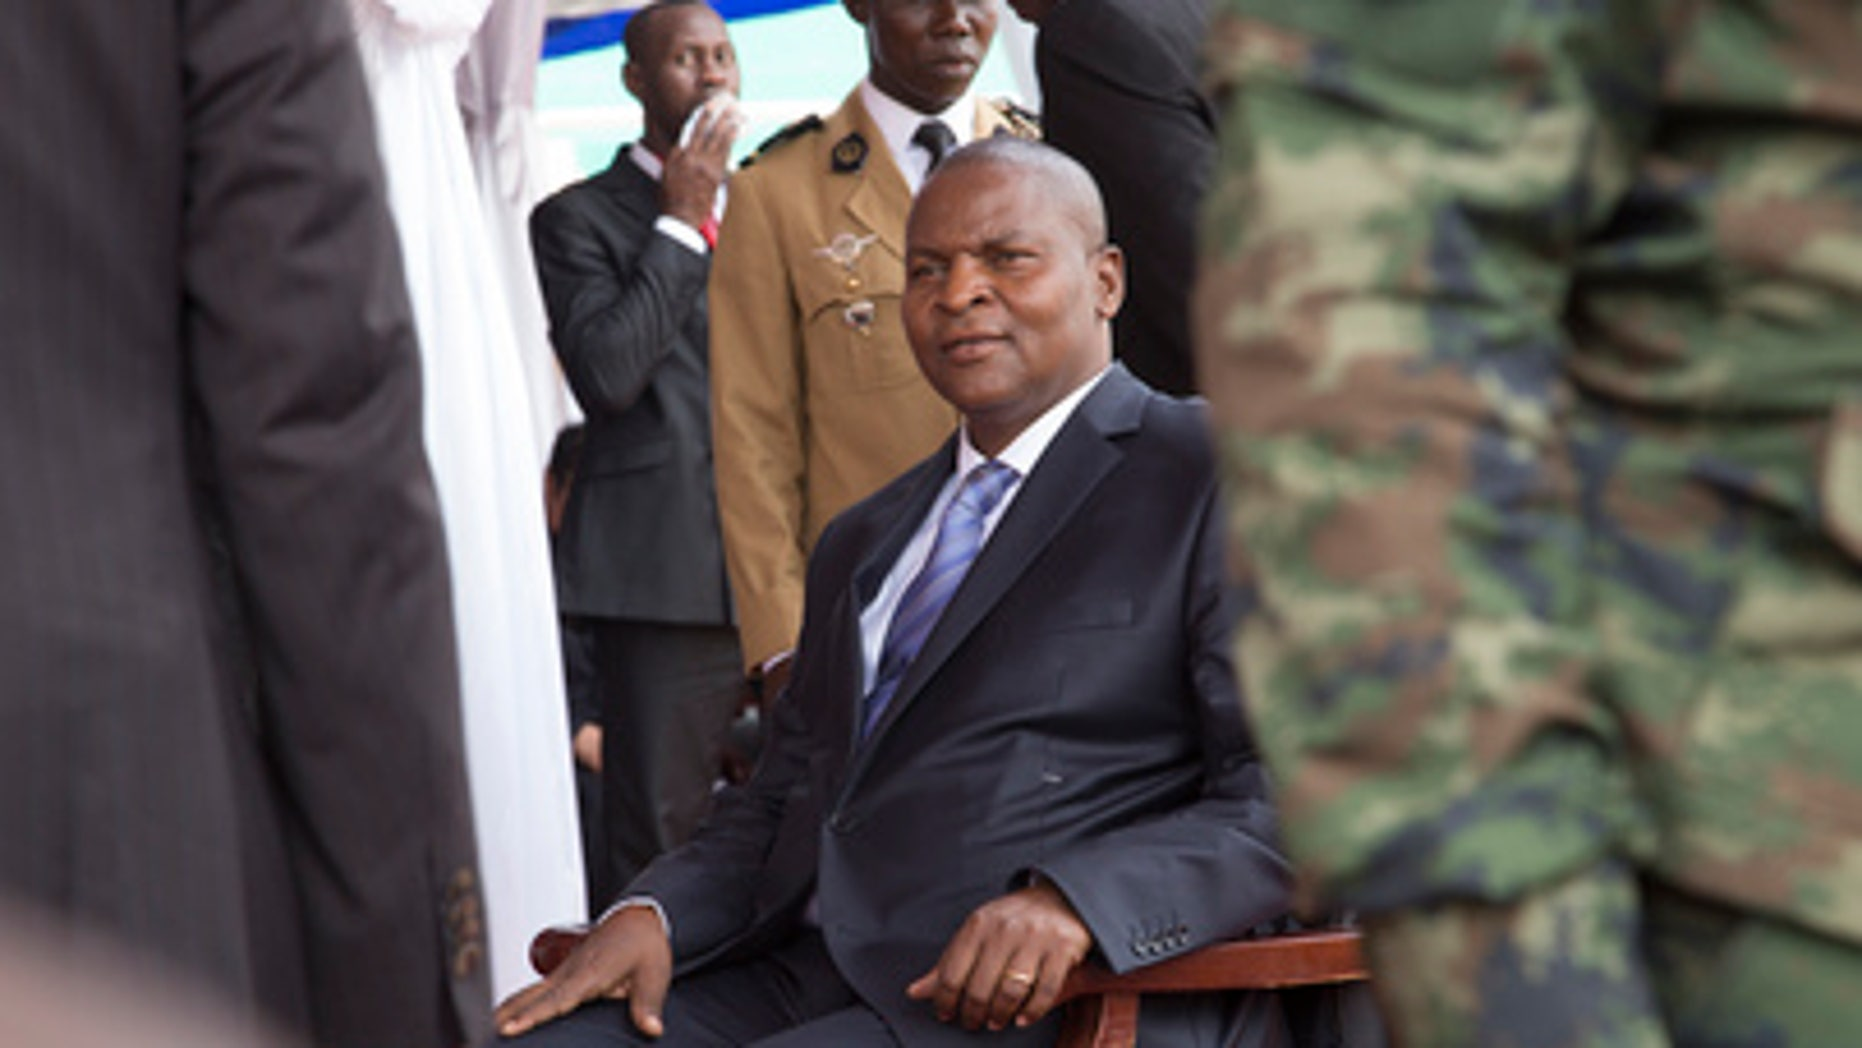 President-elect Faustin Archange Touadera of the Central African Republic (CAR) took the oath of office in Bangui on March 30, 2016.  (UN Photo/Nektarios Markogianni)s